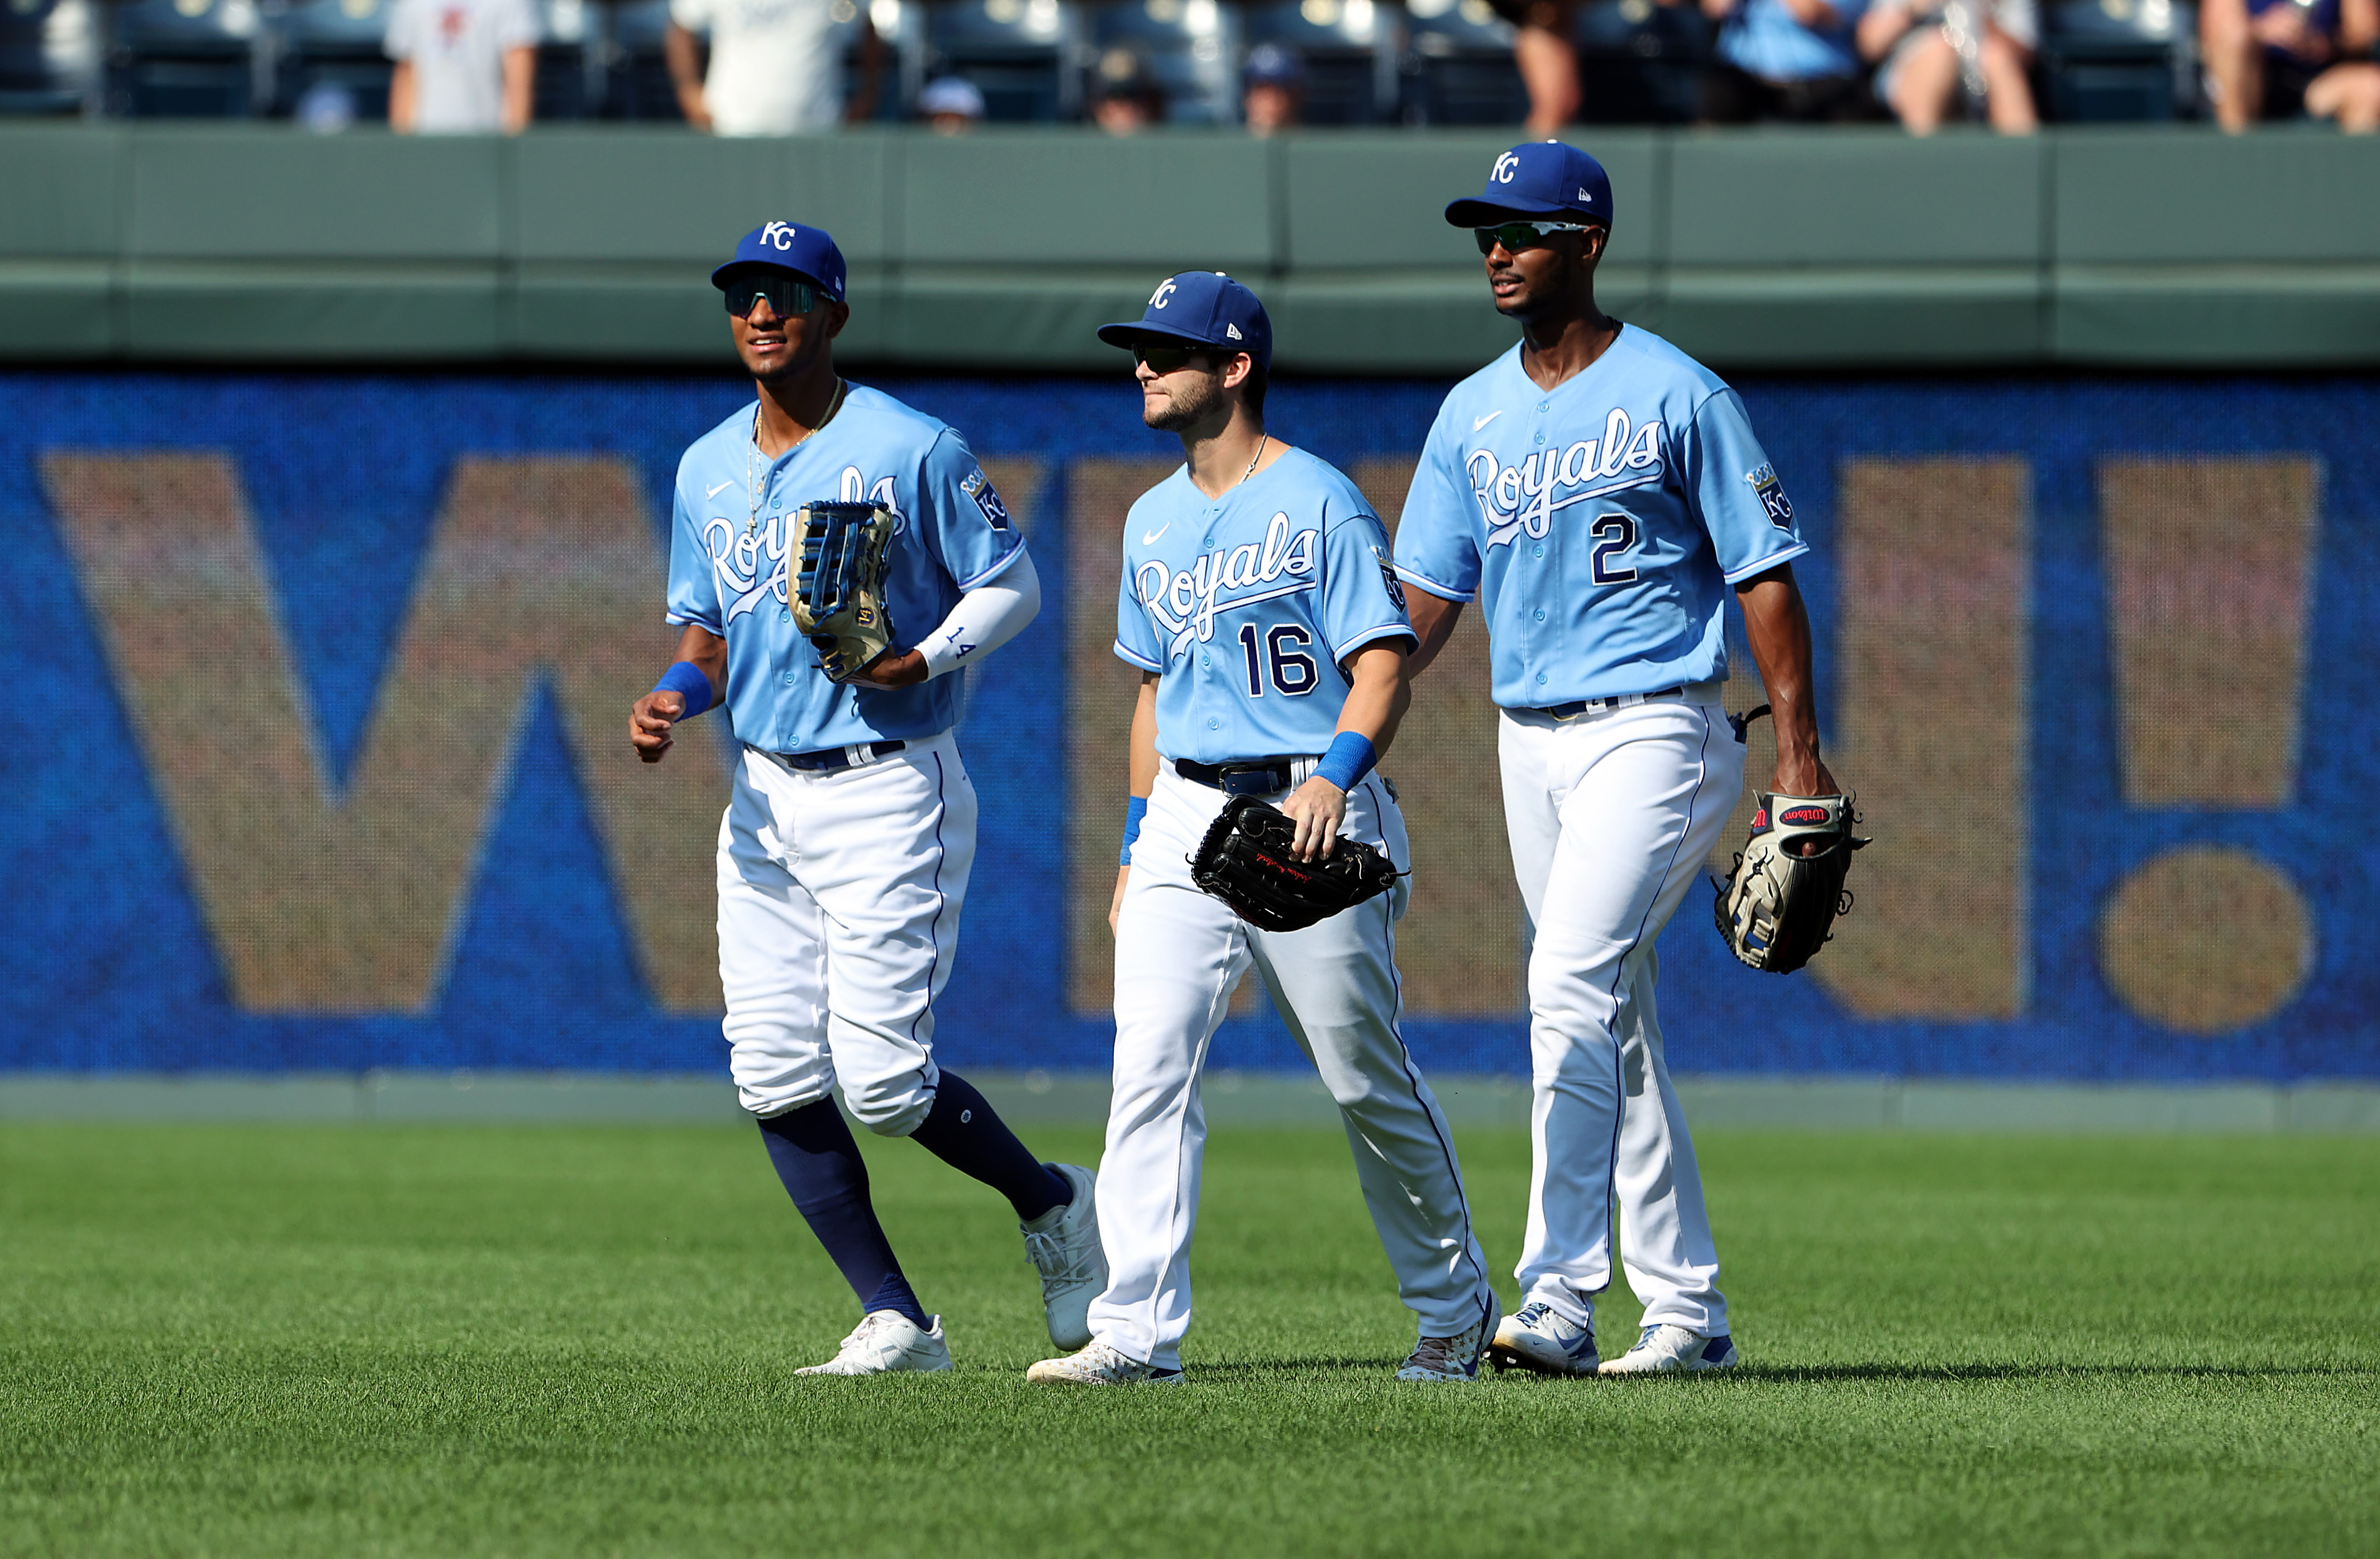 Outfielders Edward Olivares #14, Andrew Benintendi #16 and Michael A. Taylor #2 of the Kansas City Royals congratulate each other after the Royals defeated the Chicago White Sox 6-0 to win the game at Kauffman Stadium on September 05, 2021 in Kansas City, Missouri.